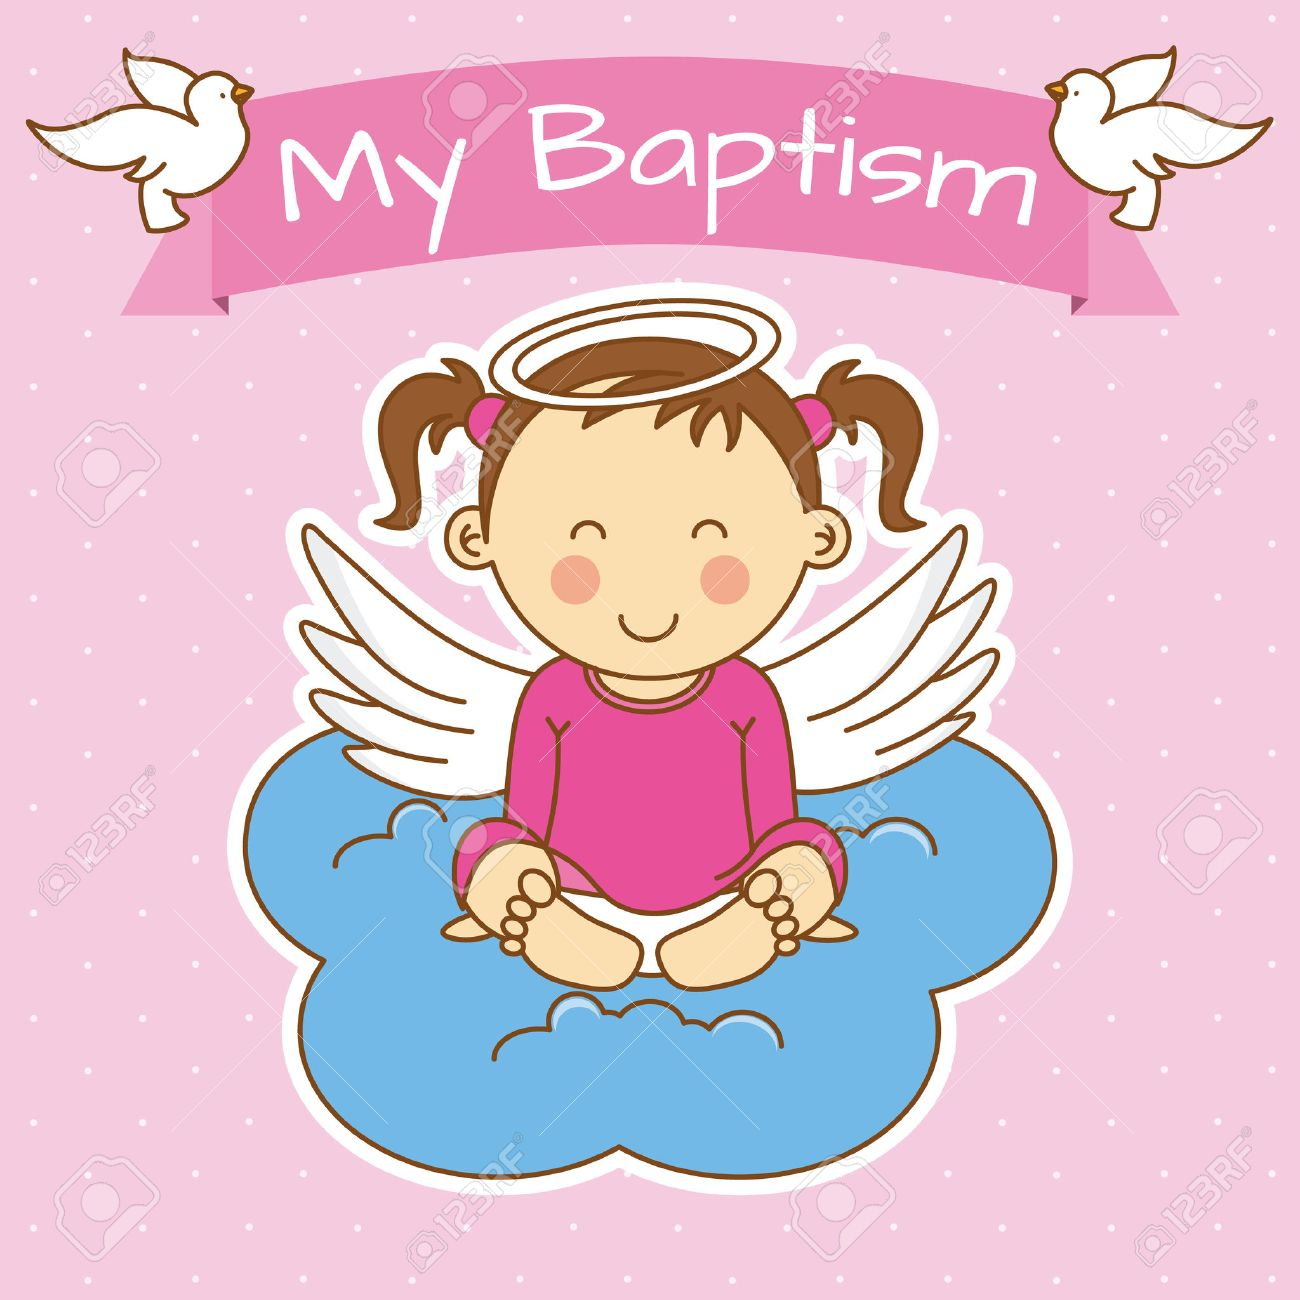 5 417 baptism cliparts stock vector and royalty free baptism rh 123rf com Baptism Backgrounds Baptism Graphics